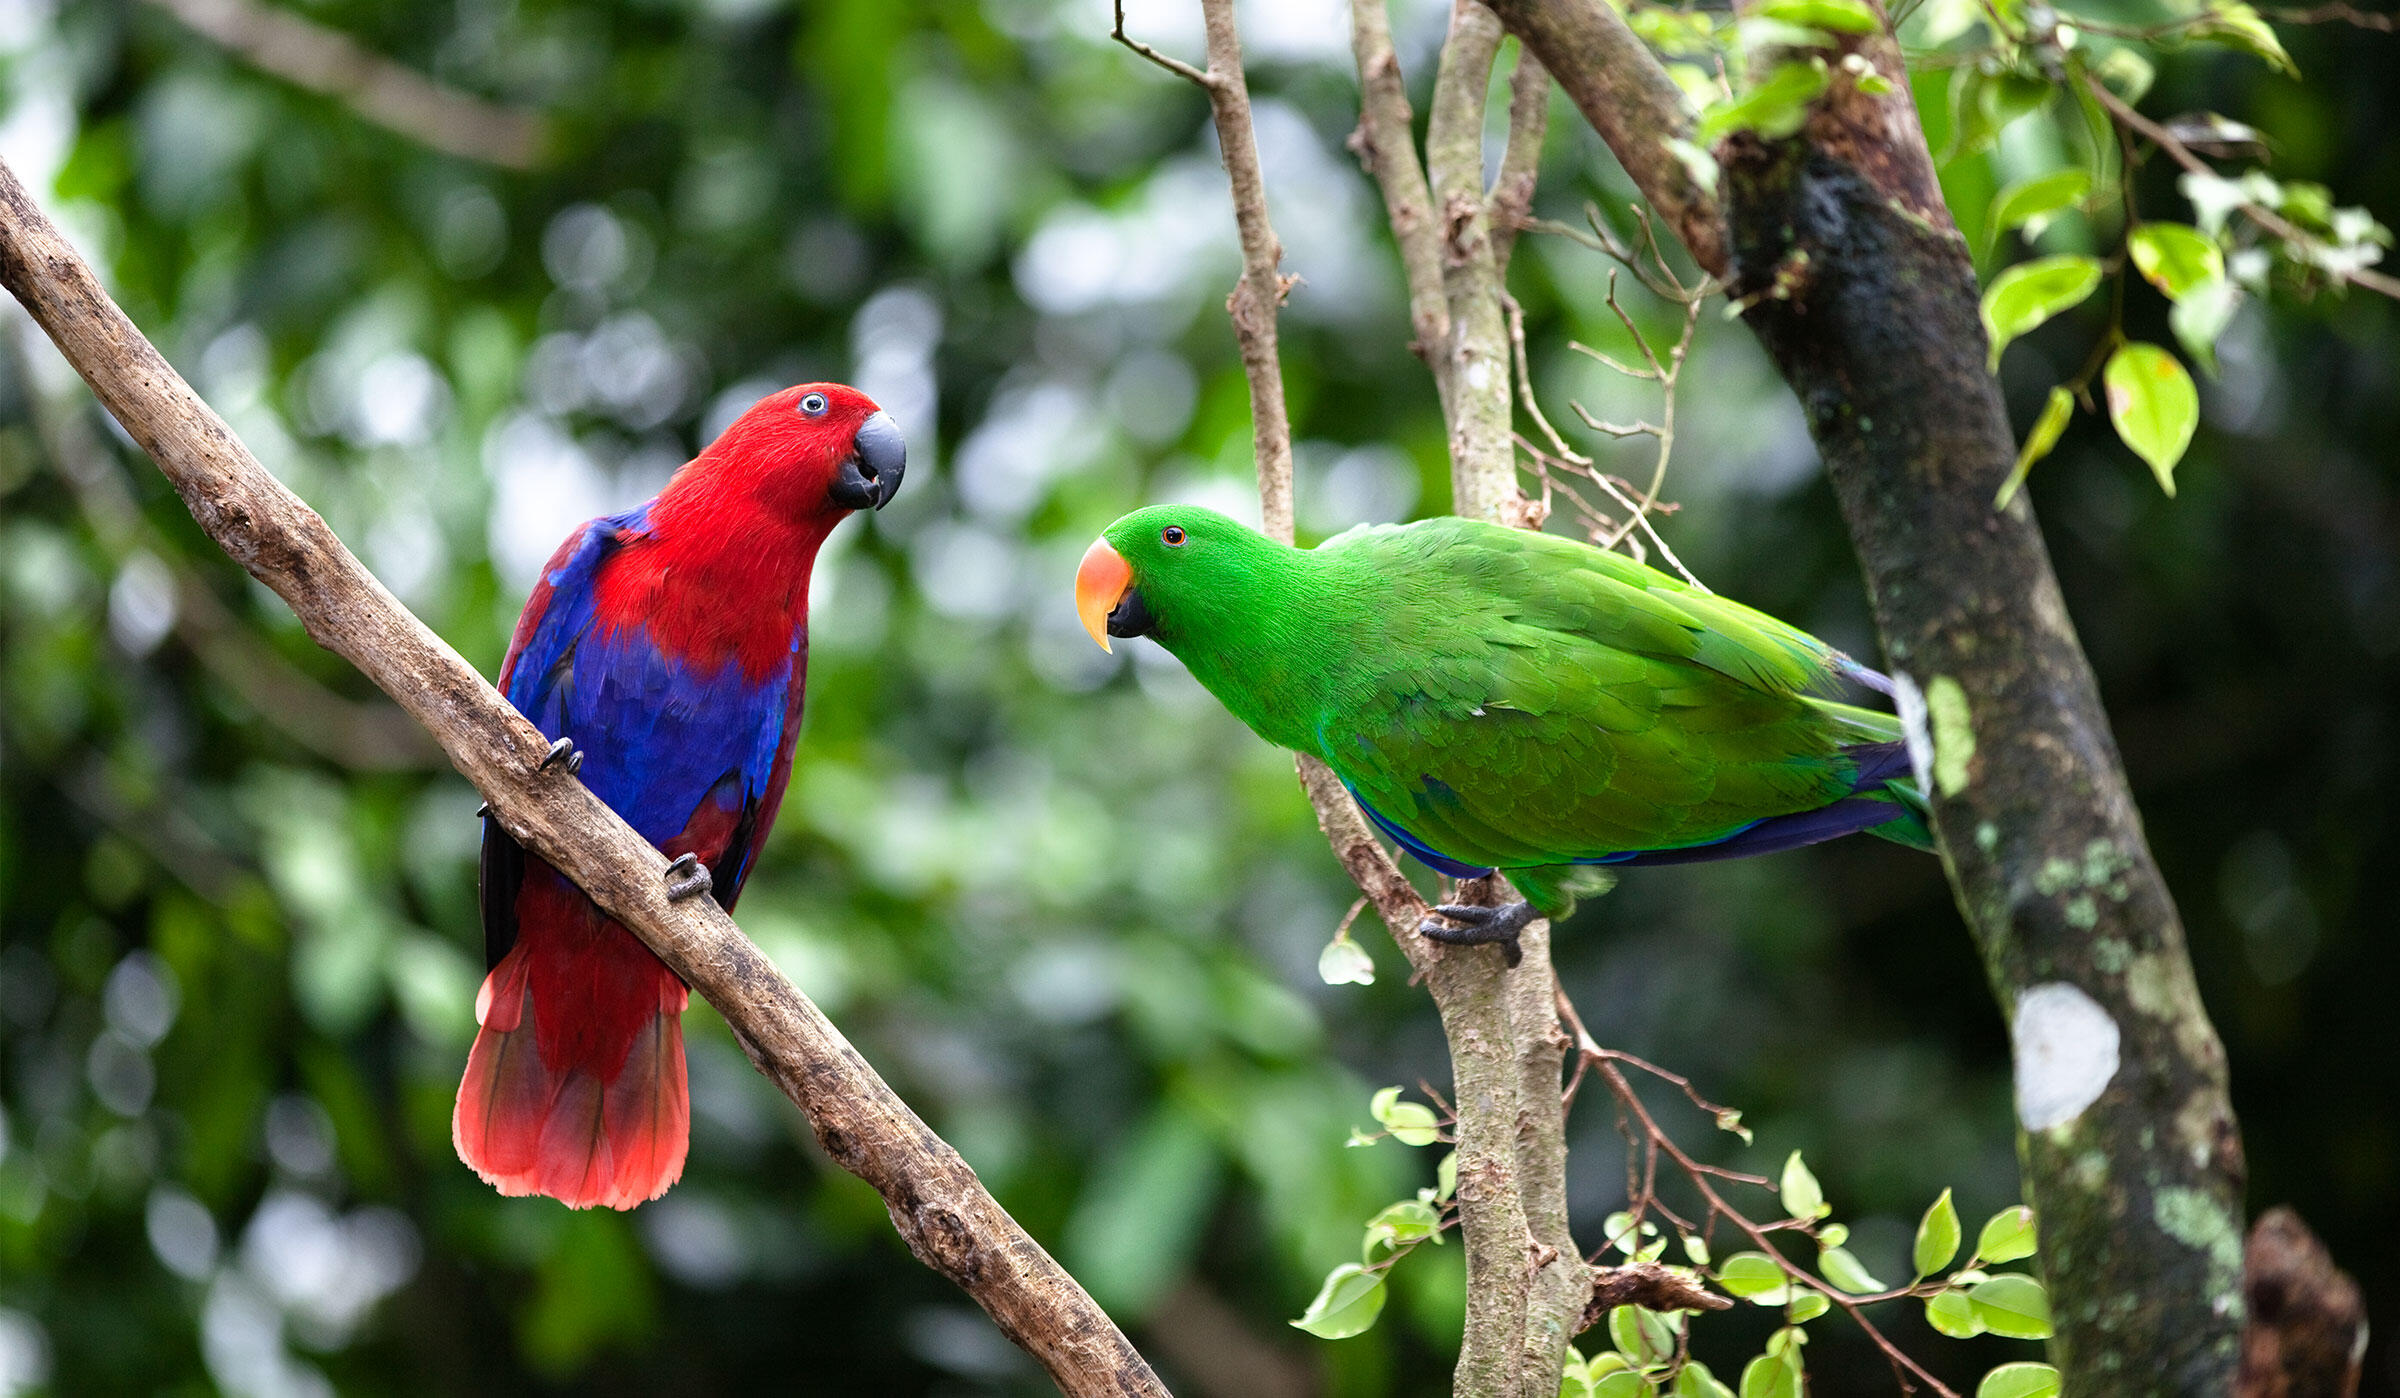 Can you guess which Eclectus Parrot is female and which is male? Scroll down for the big reveal. Konrad Wothe/Minden Pictures